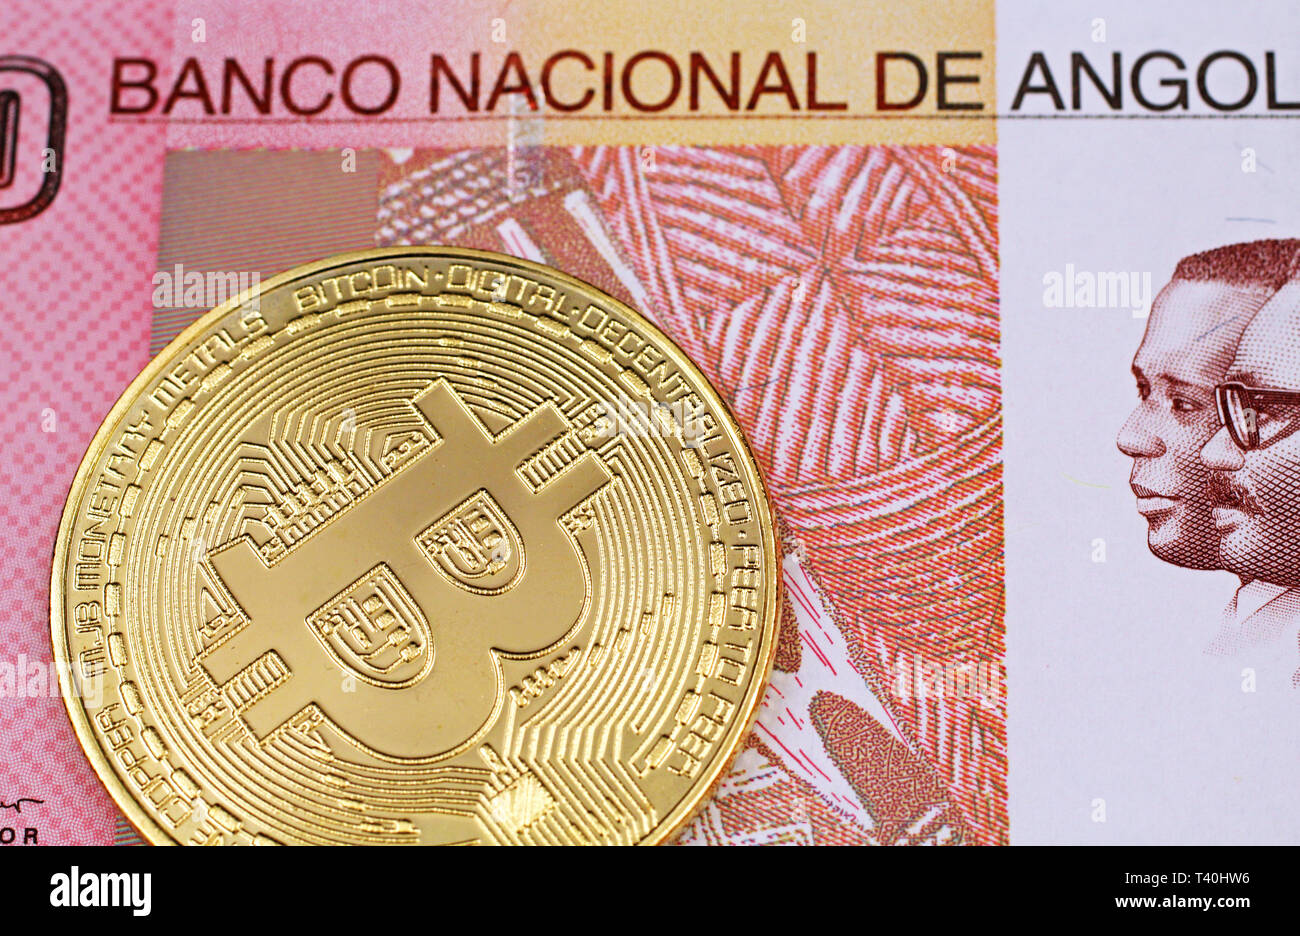 A macro image of a physical, golden Bitcoin with a colorful one hundred Angolan kwanza bank note close up - Stock Image